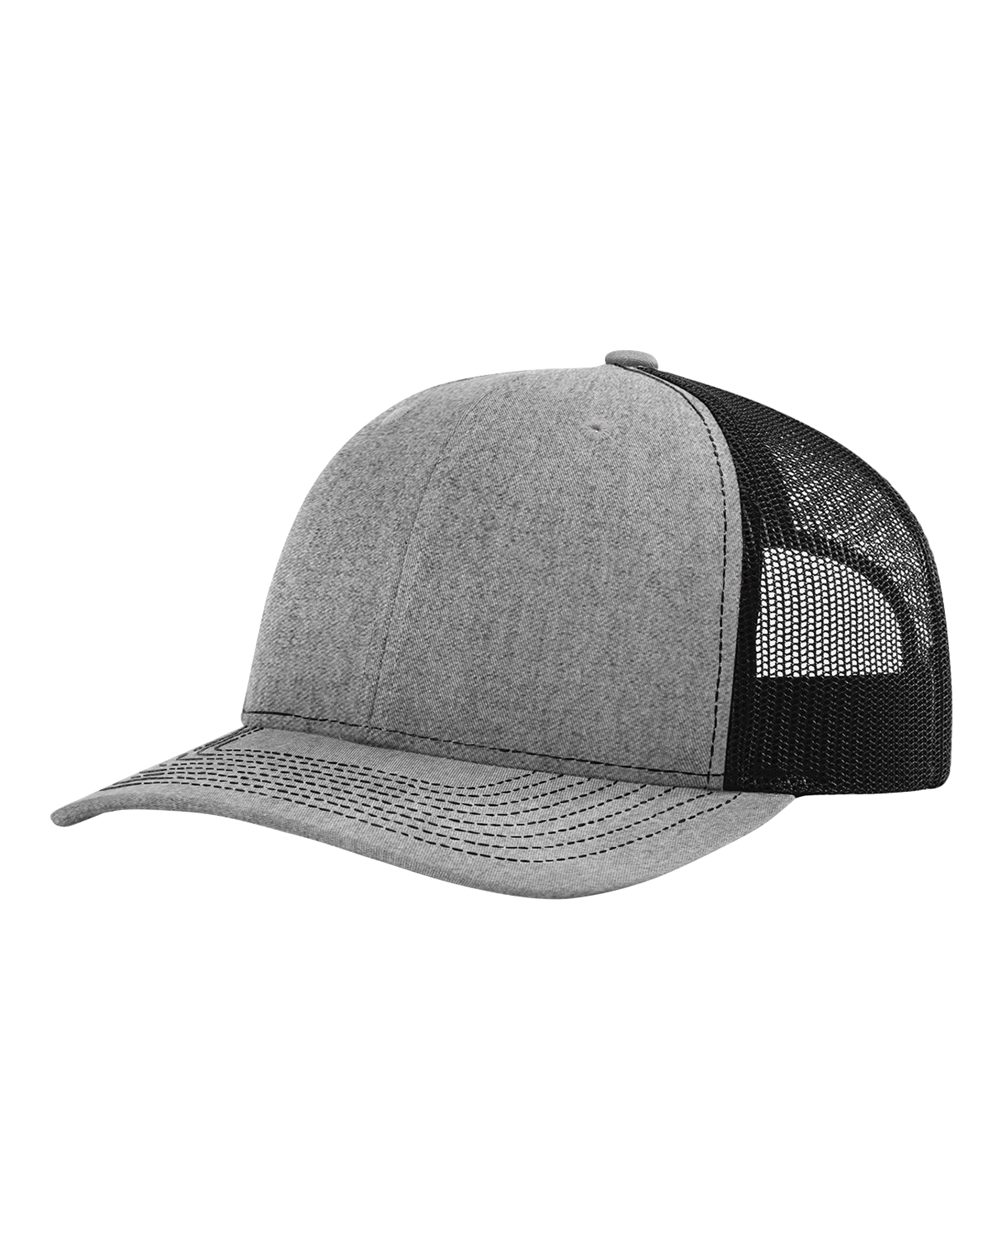 c1e0425034be6 Richardson 112 - Trucker Snapback Cap  4.86 - Headwear